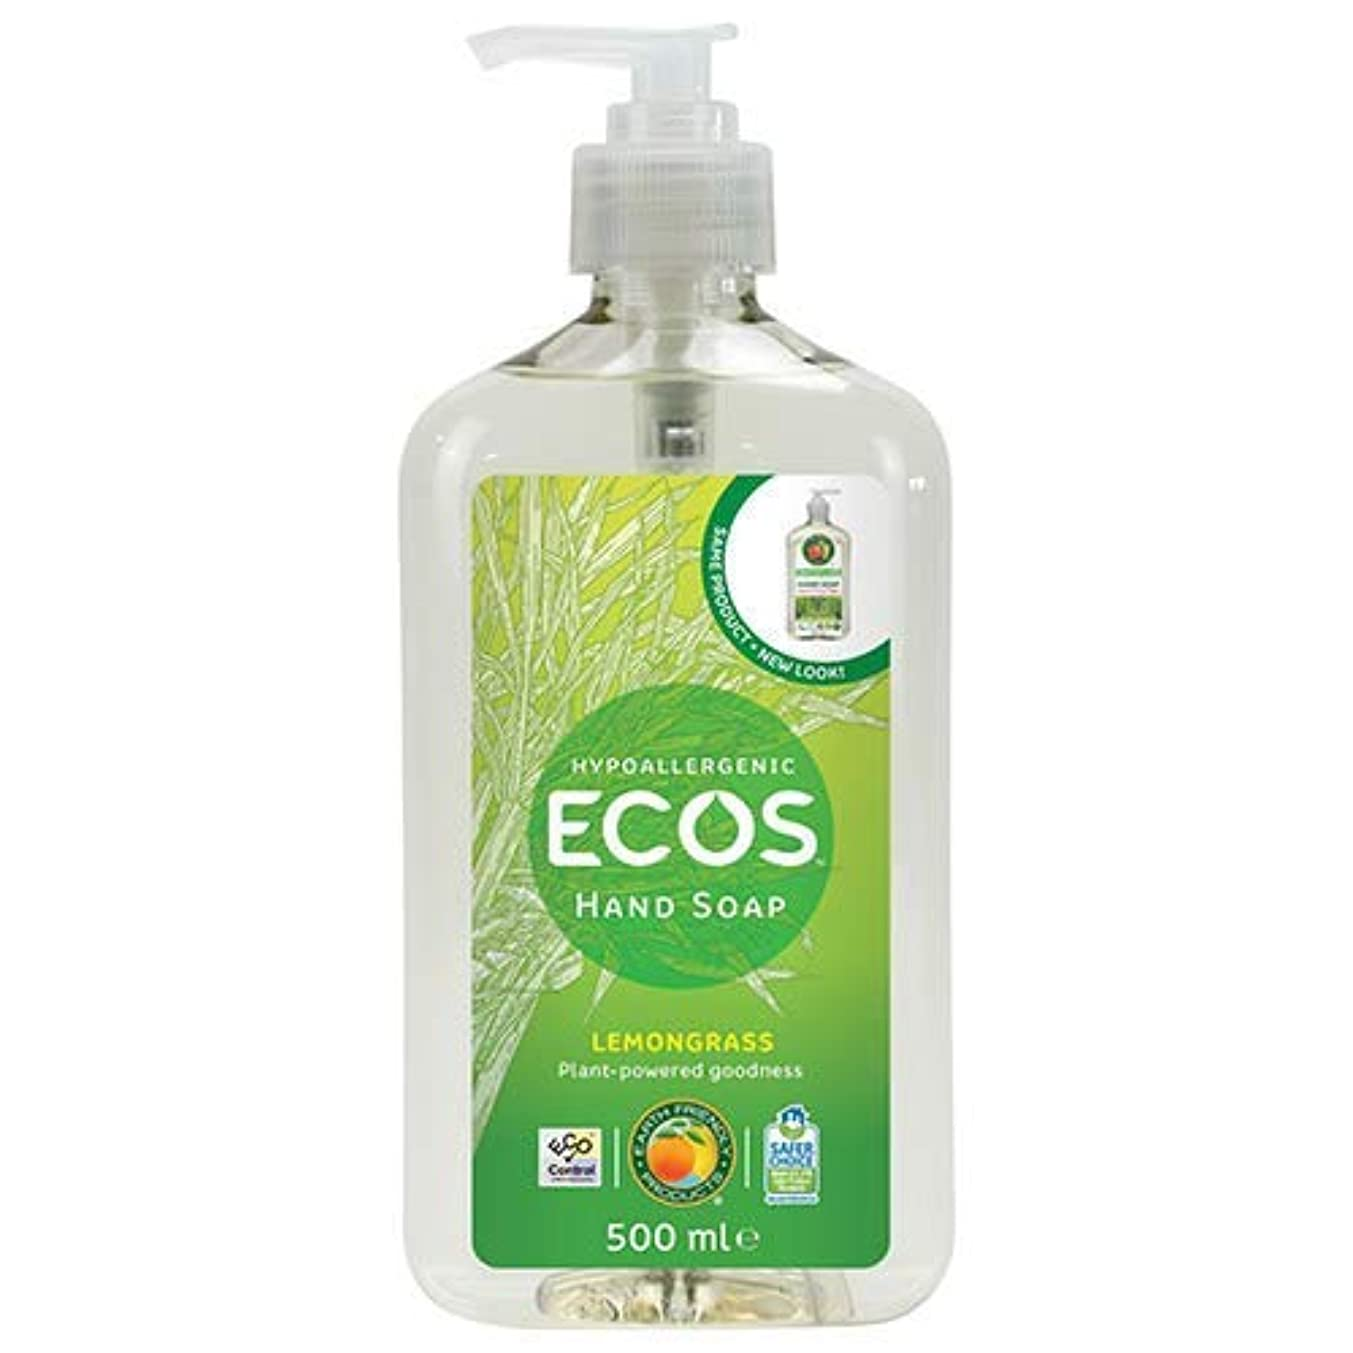 Earth Friendly Products Hand Soap Lemongrass 500ml / ?????????????????????500??????